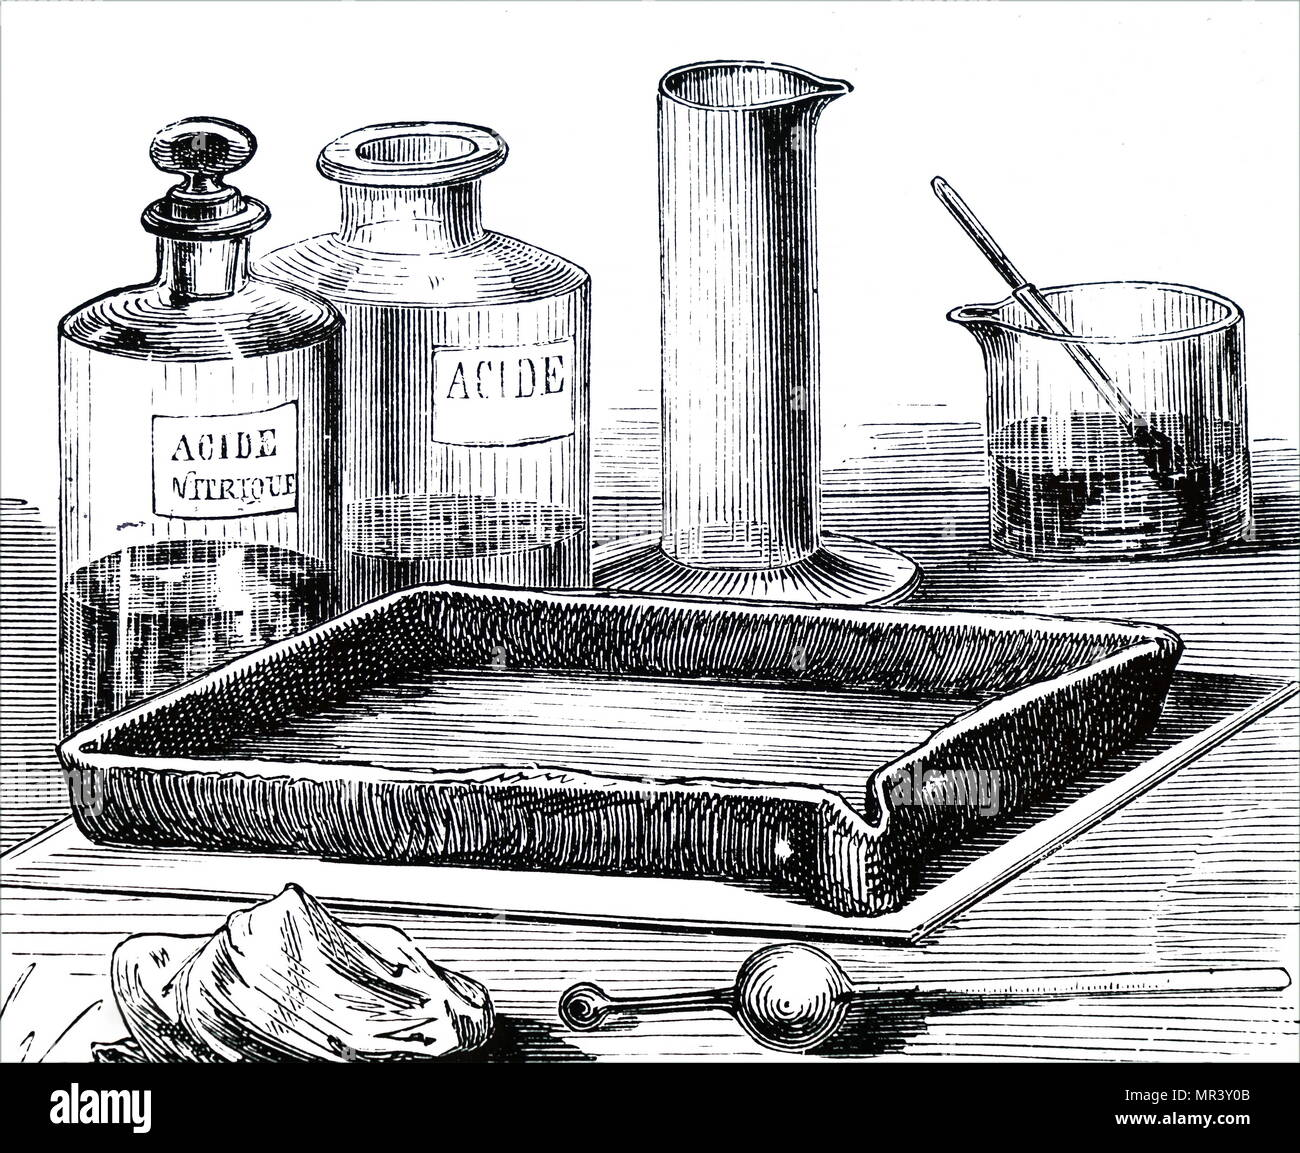 Illustration depicting a bath of aqua fortis (concentrated nitric acid) for etching a copperplate. Dated 19th century - Stock Image